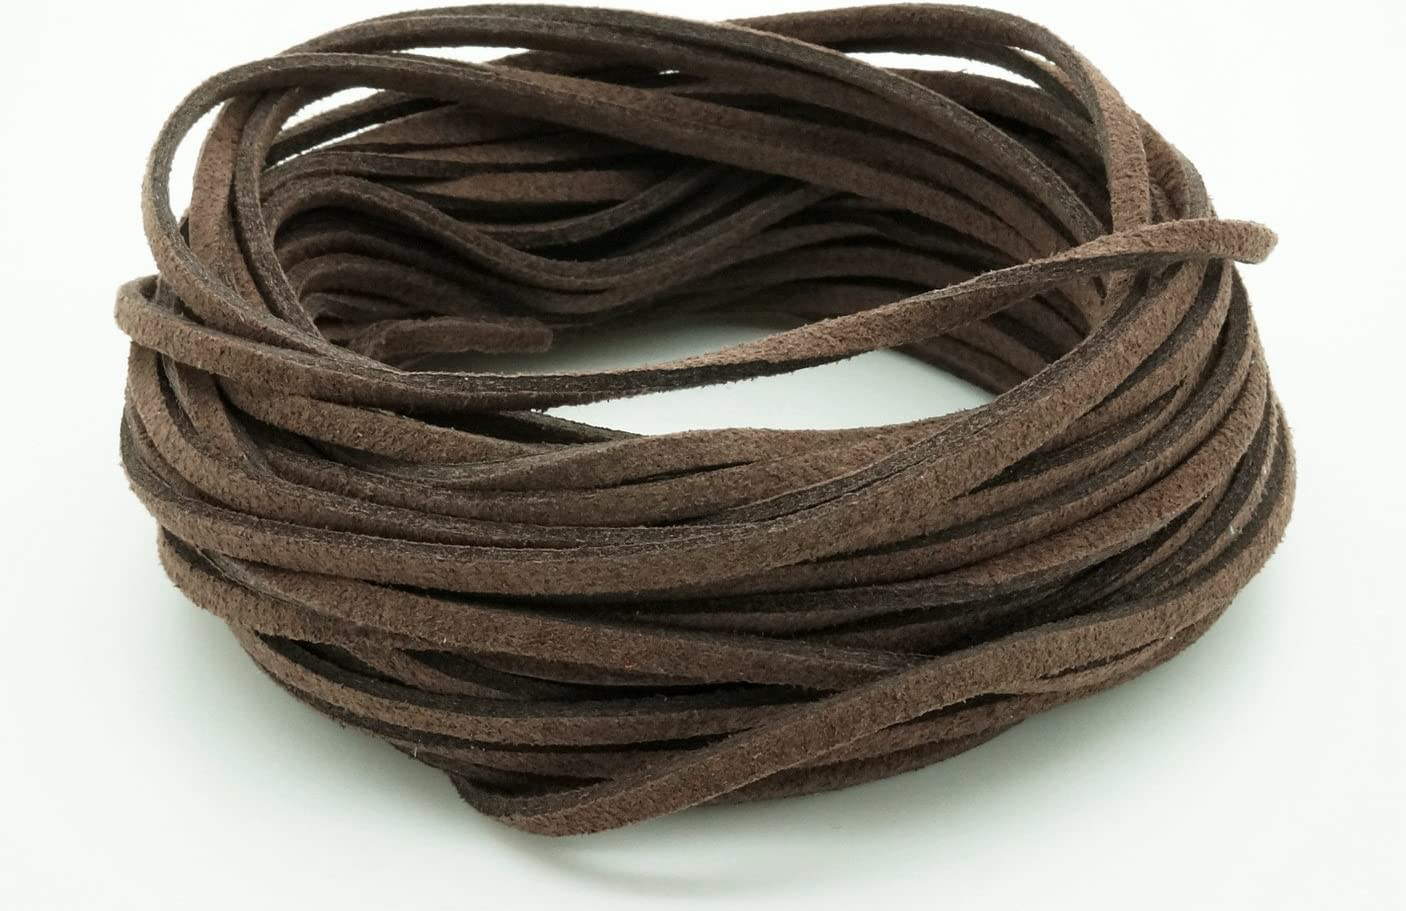 CHOCOLATE BROWN 3mm x 1.5mm Faux Suede Cord Leather Lace Bracelet Necklace Making 10yards Skein